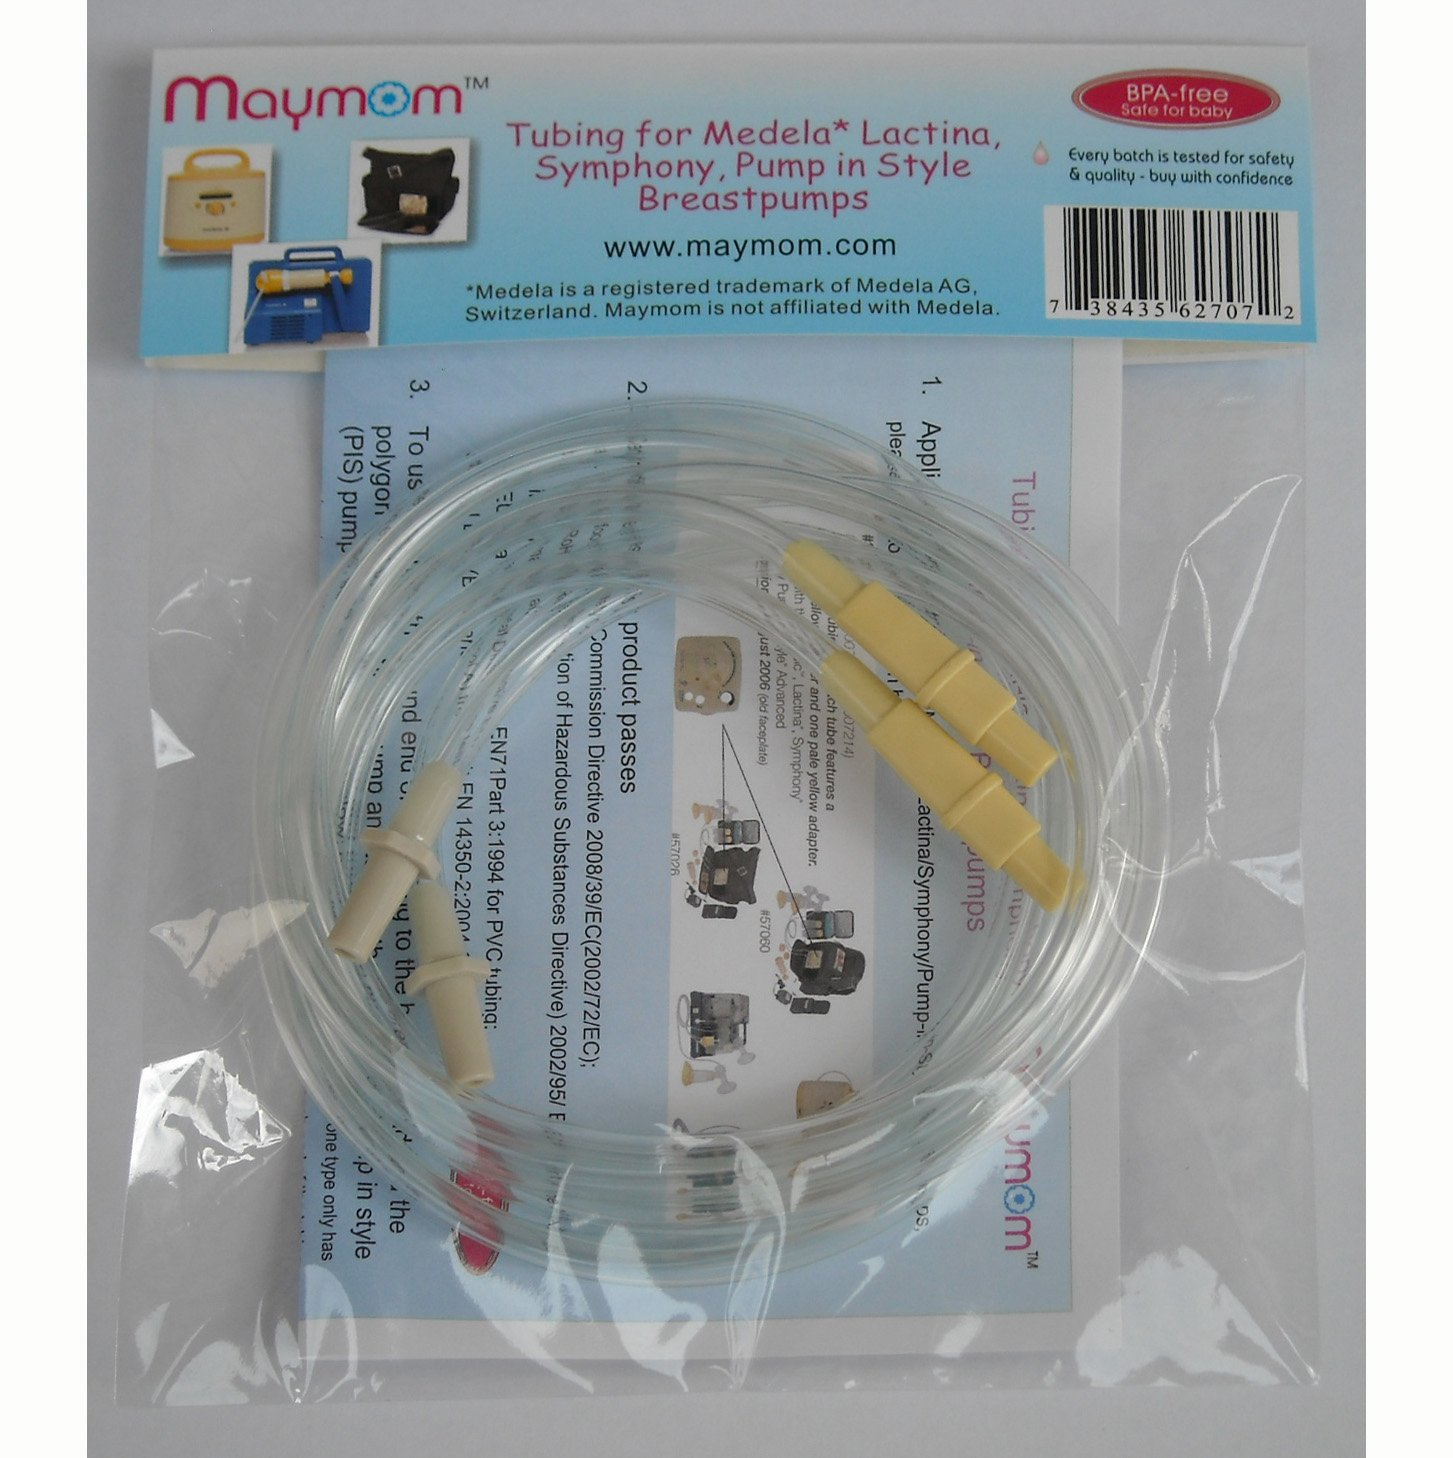 Maymom Breast Pump Kit for Medela Pump in Style Pumps; 2 Breastshields, 2 Valves, 4 Membranes, & 2 Tubes for Pump in Style Advanced Sold After July 2006; Replacement Parts for Medela Breast Shield, Medela Tubing, Valves and Membranes M001-2LF2V4M